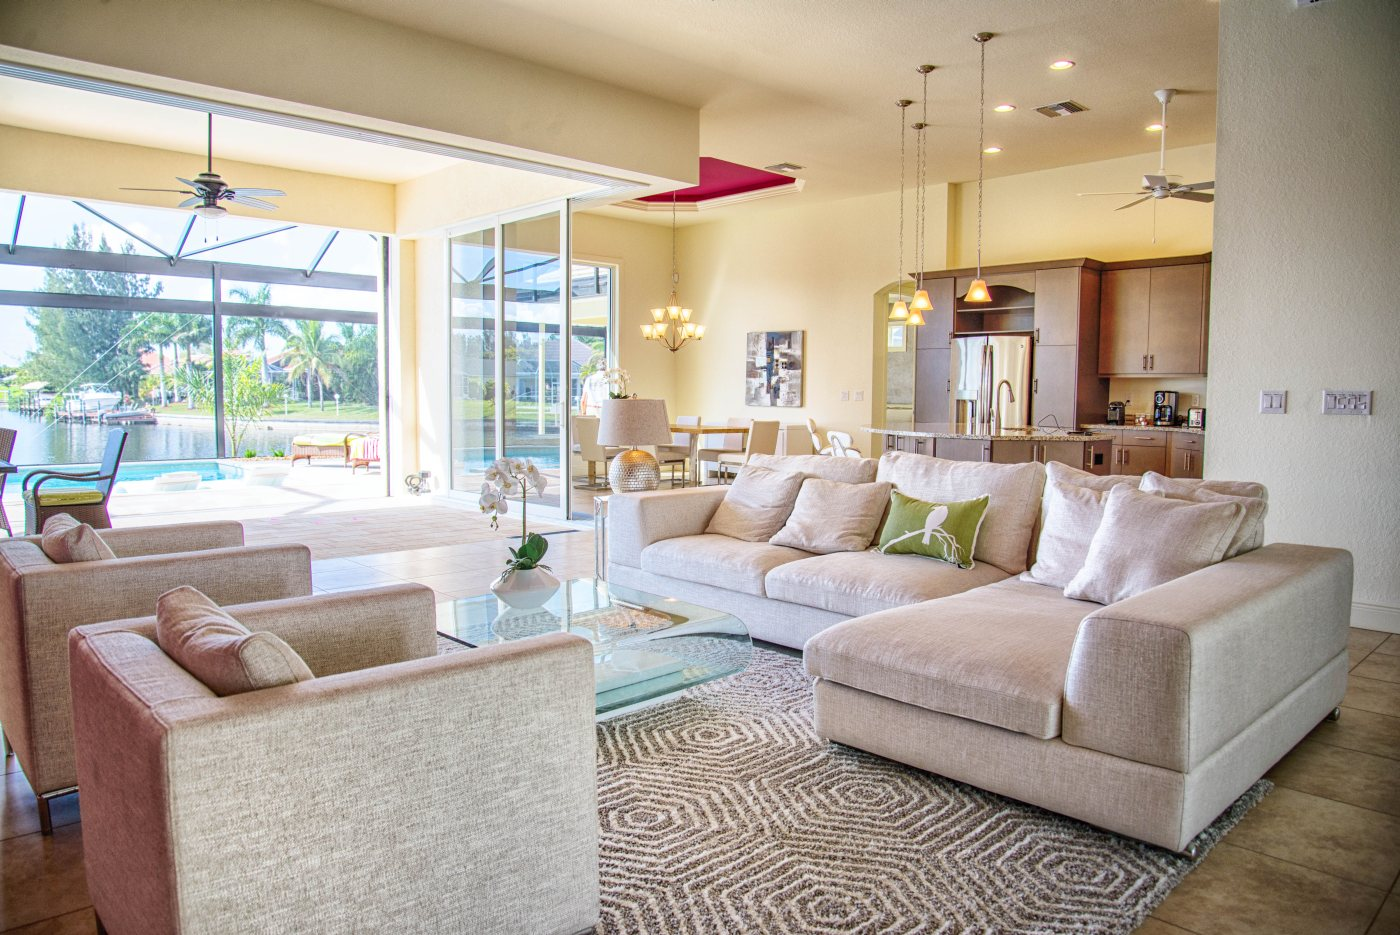 Livingroom in Florida